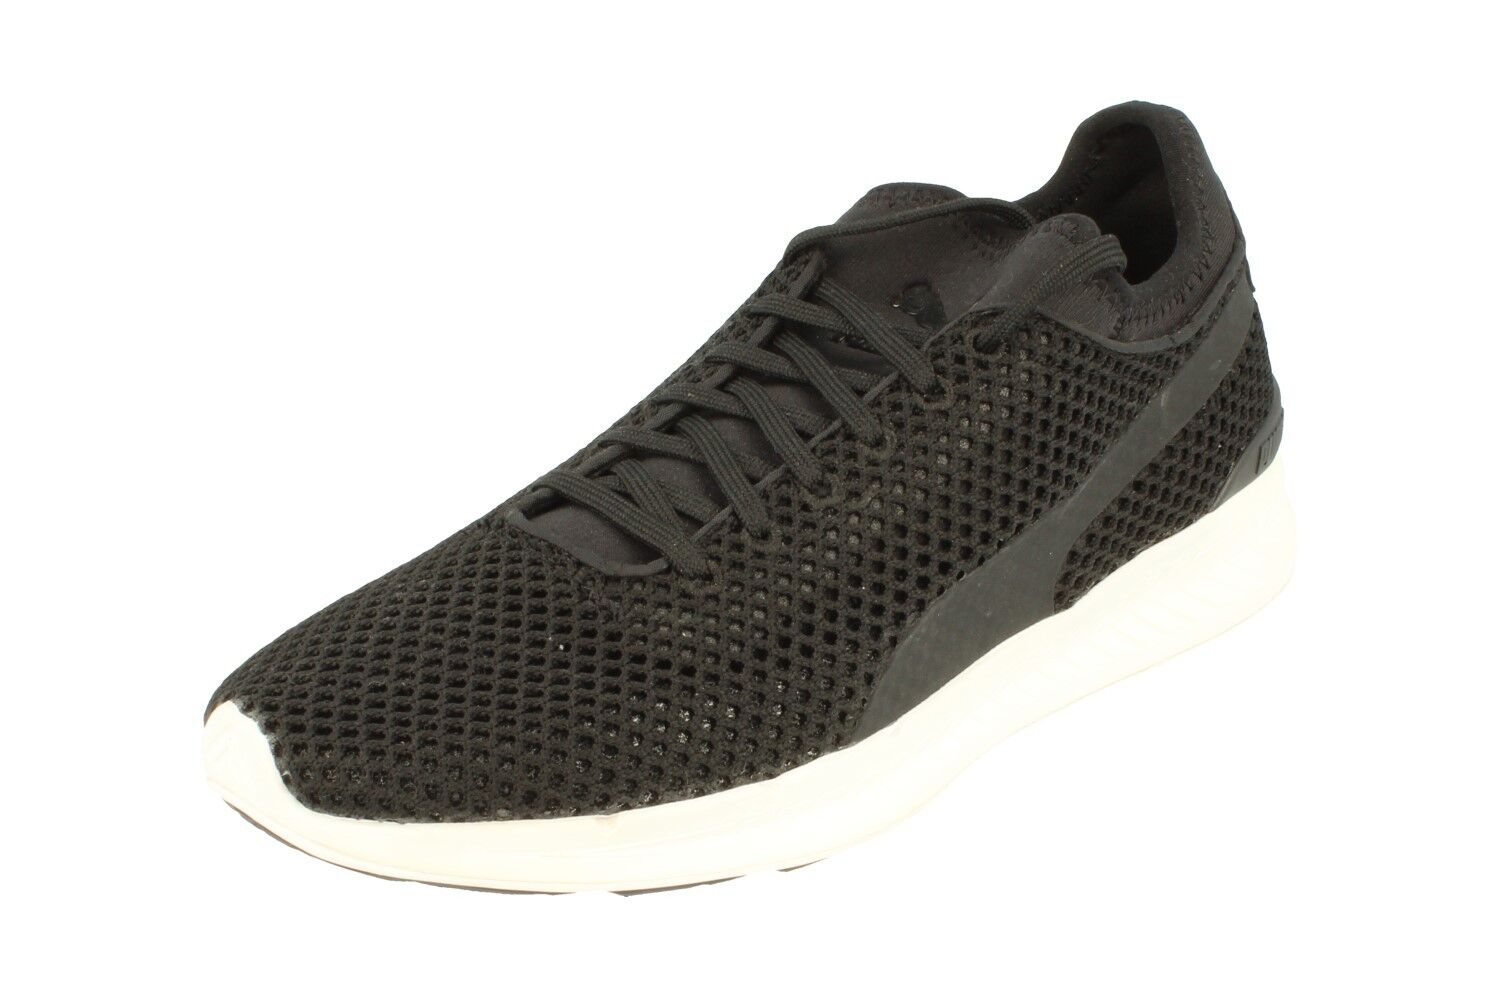 Puma Ignite Sock Knit Mens Running Trainers 361060 Sneakers Shoes 03